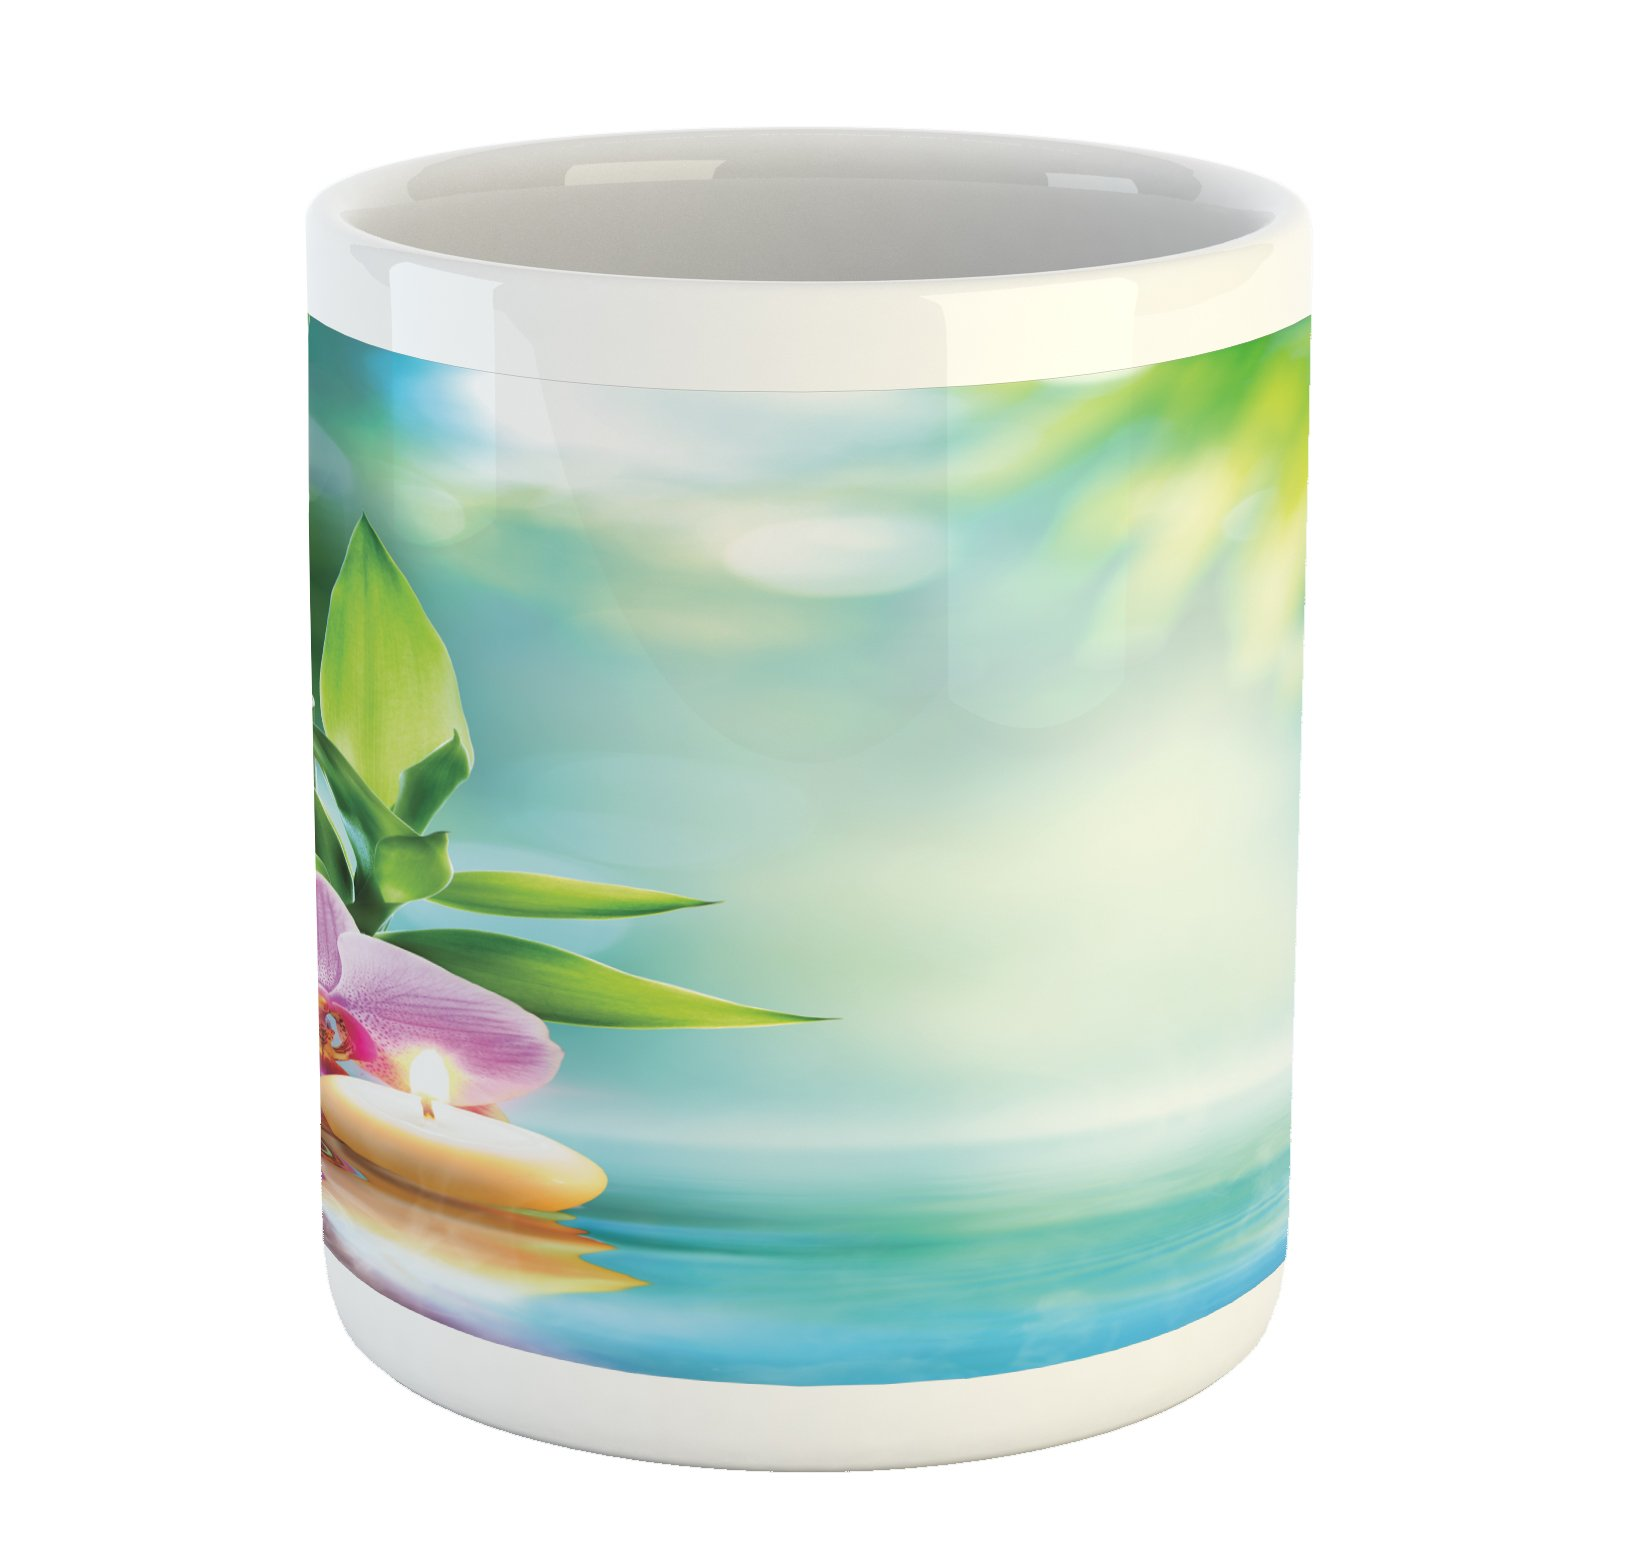 Ambesonne Spa Mug, Symbolic Spa Features with Candle and Bamboos Tranquil and Thoughtful Life Nature Print, Printed Ceramic Coffee Mug Water Tea Drinks Cup, Multicolor